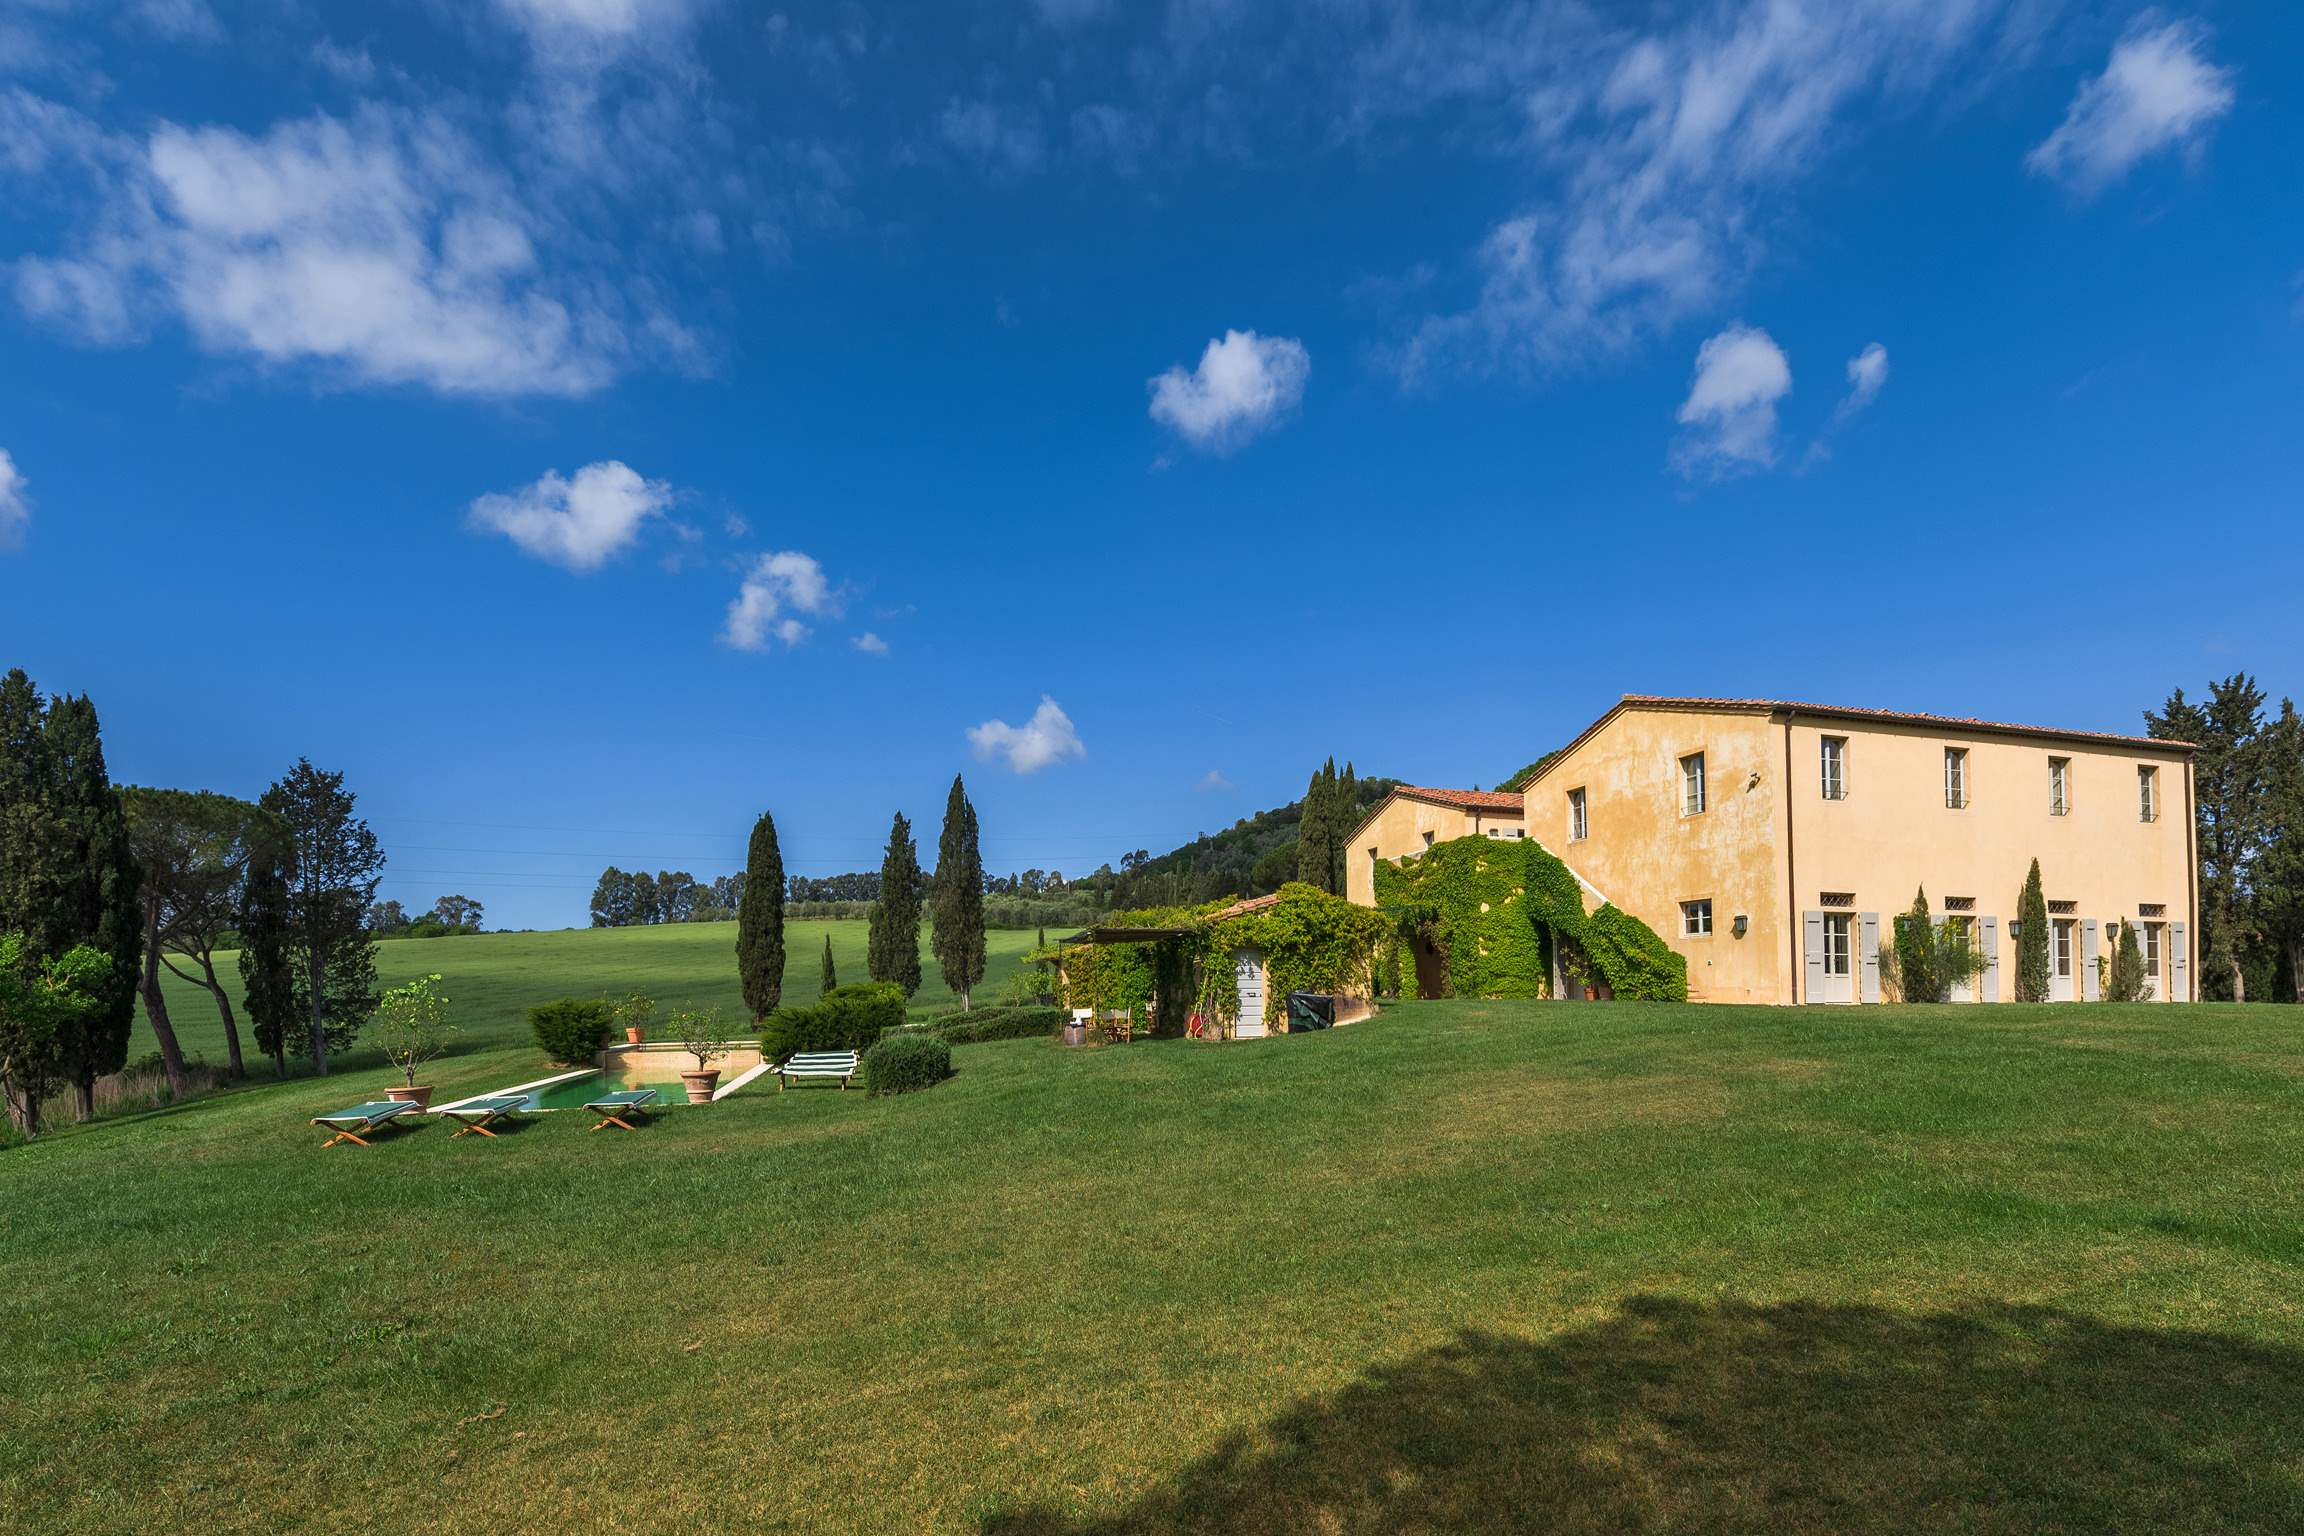 Villa Maremma 1, 7 bedroom villa in South Tuscany - Maremma, Tuscany Photo #2